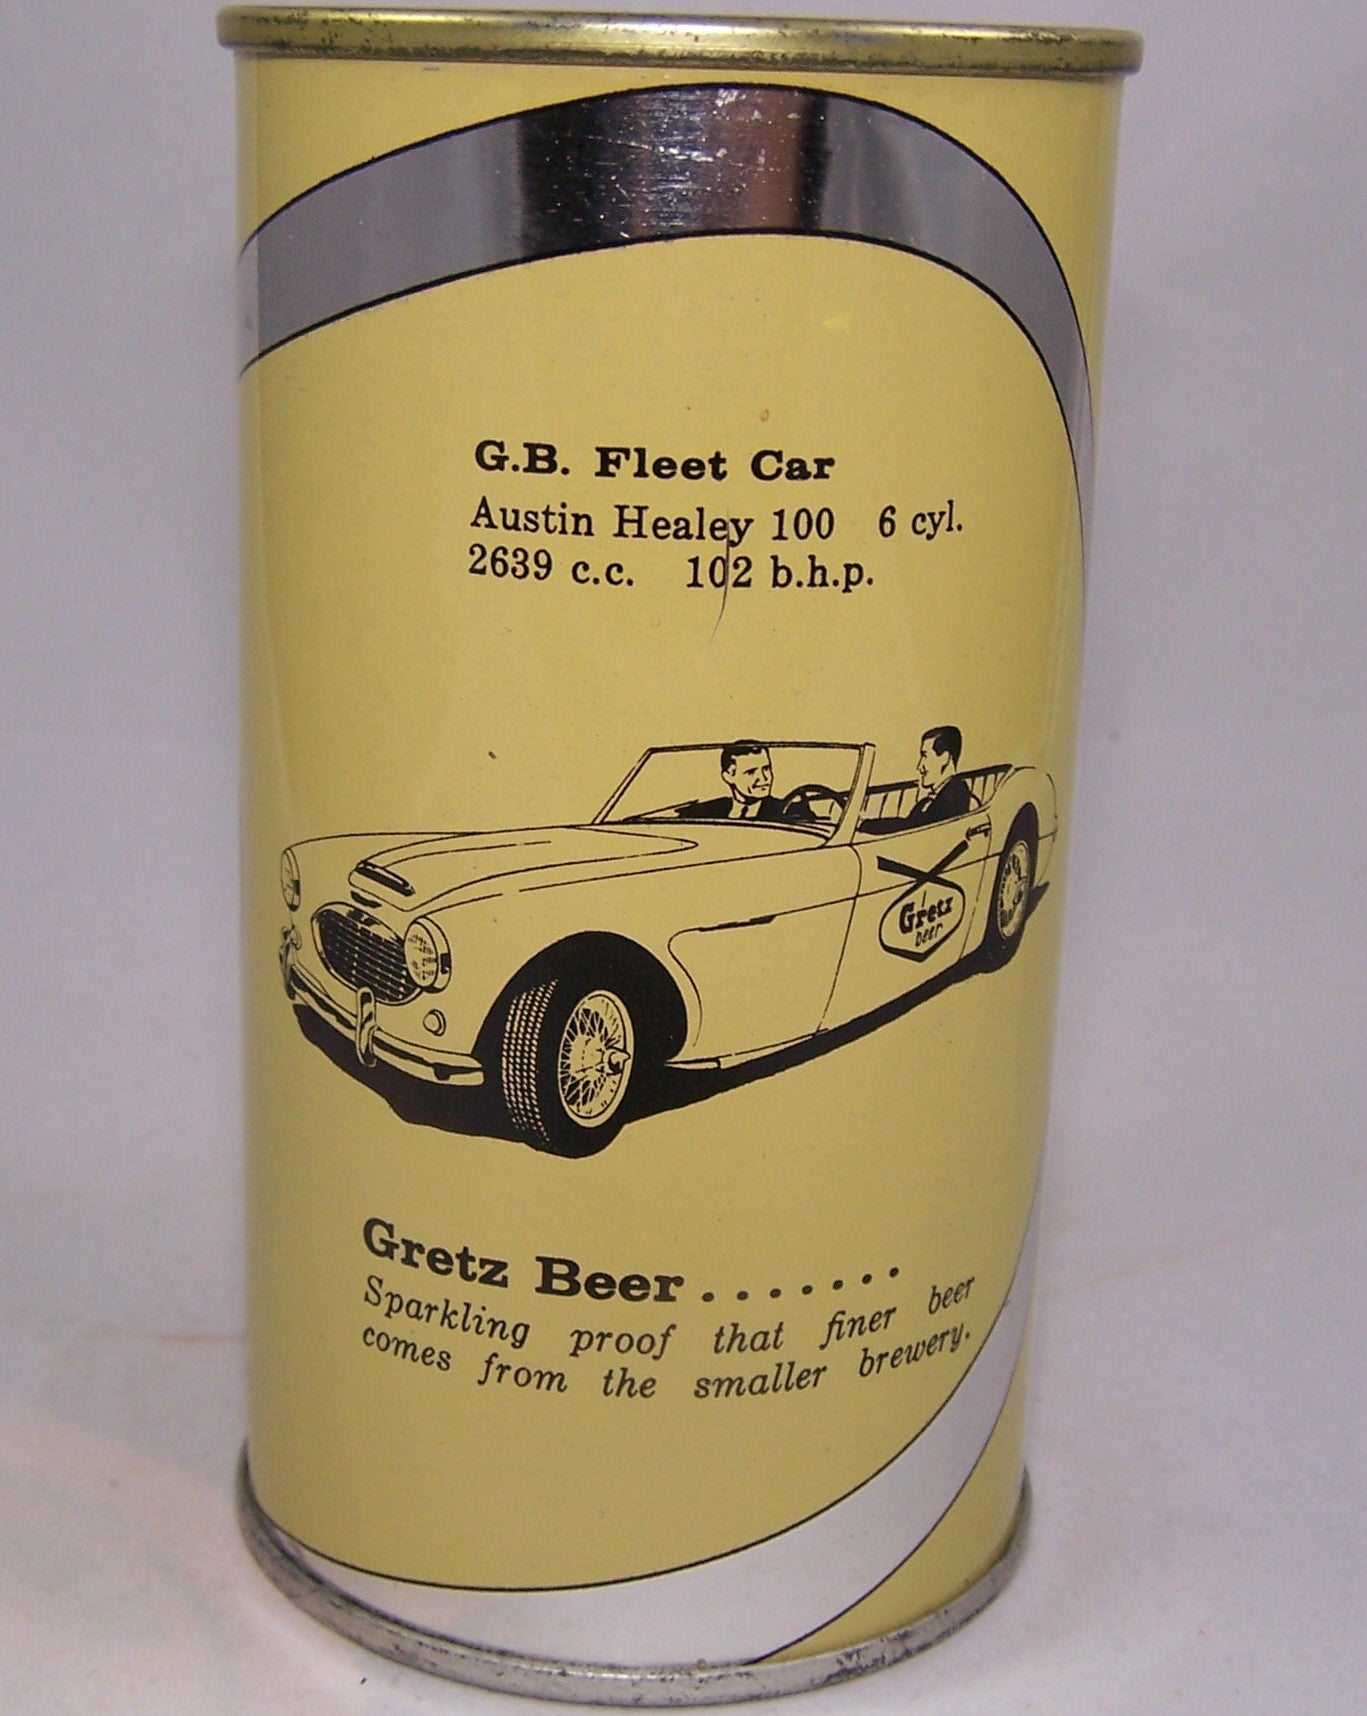 Gretz Beer, G.B Fleet Car, Austin Healey 100, (Black Letters) USBC 75-15, Grade 1/1+ Sold on 01/27/16